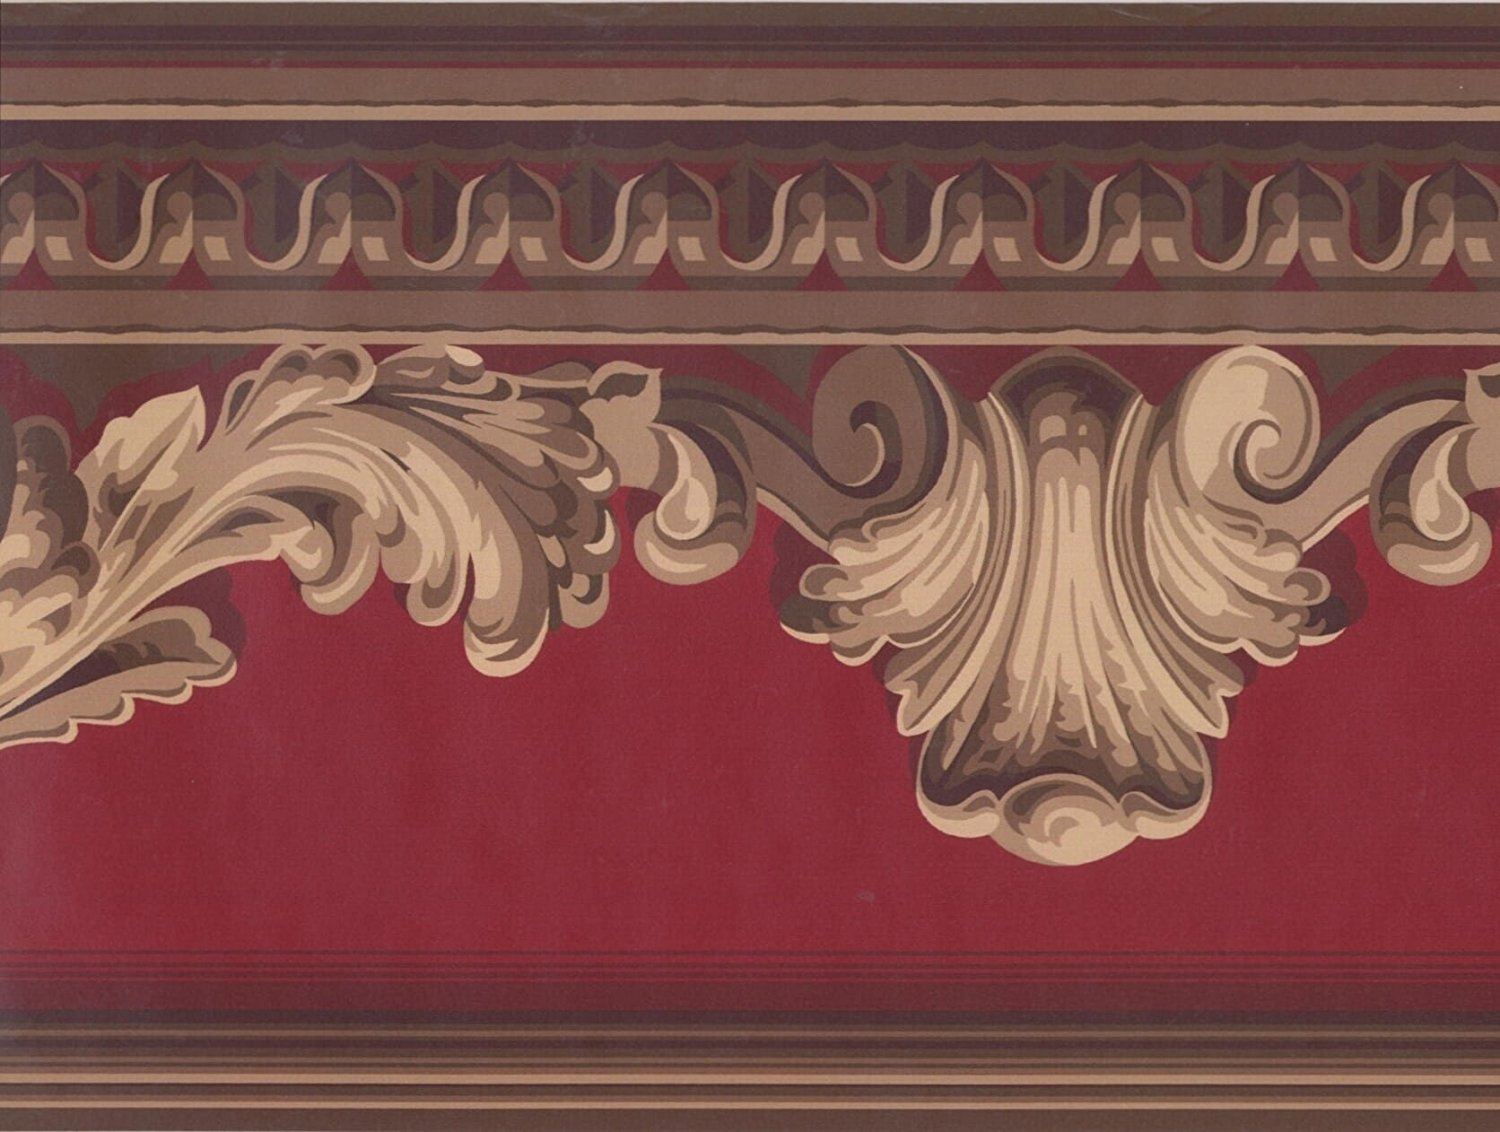 Get Quotations Gold Crown Molding Maroon Scarlet Red Wallpaper Border Retro Design